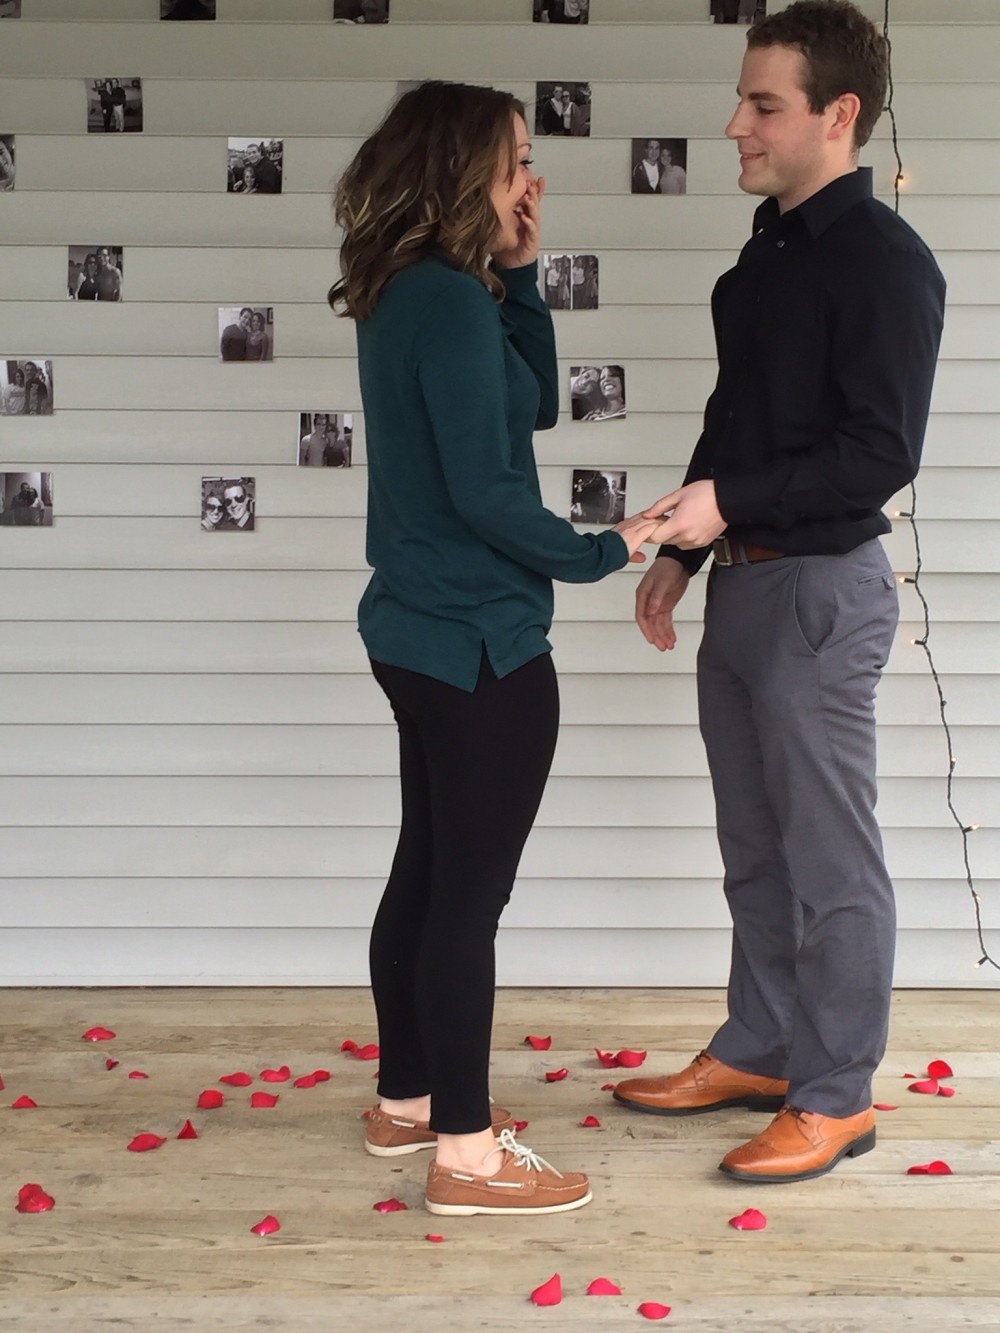 Image 3 of Lauren and Connor's Sweet Back Porch Proposal